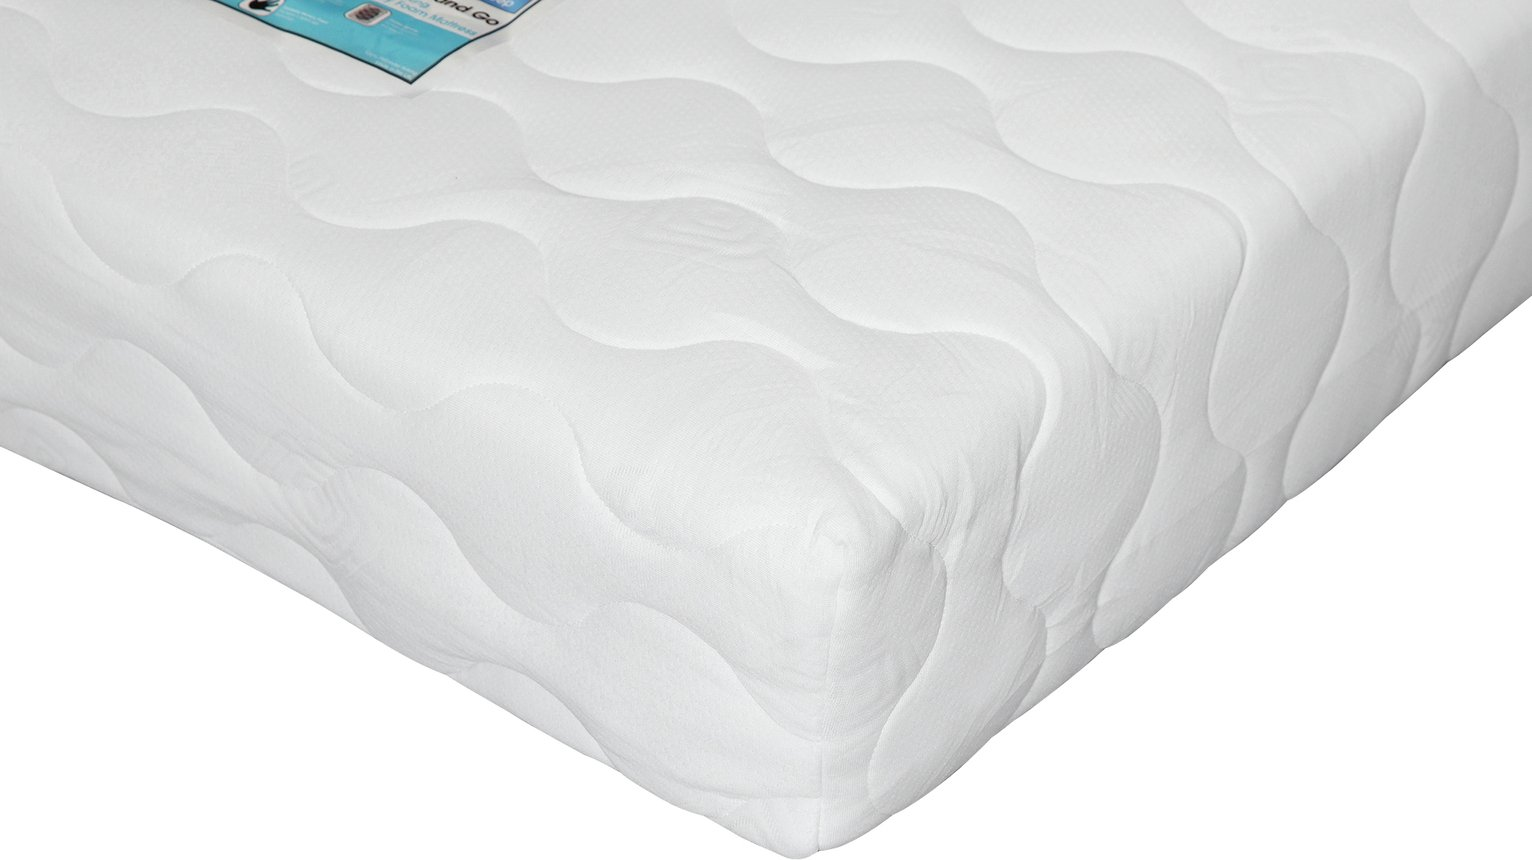 Image of I-Sleep - Collect and Go Pocket - Double Memory Foam Mattress